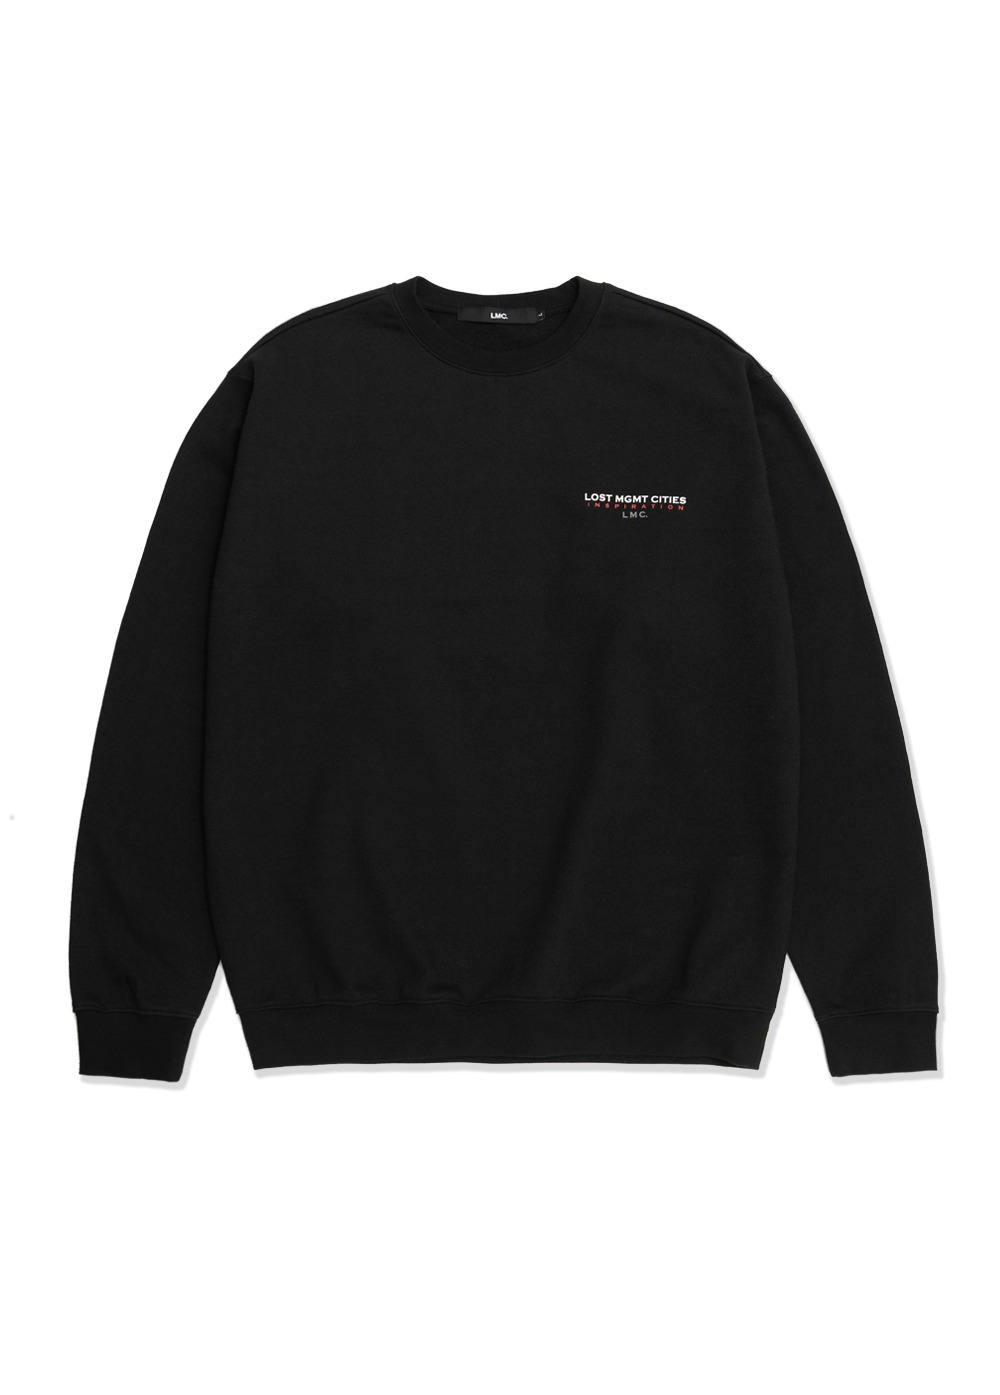 LMC INSPIRATION SWEATSHIRT black